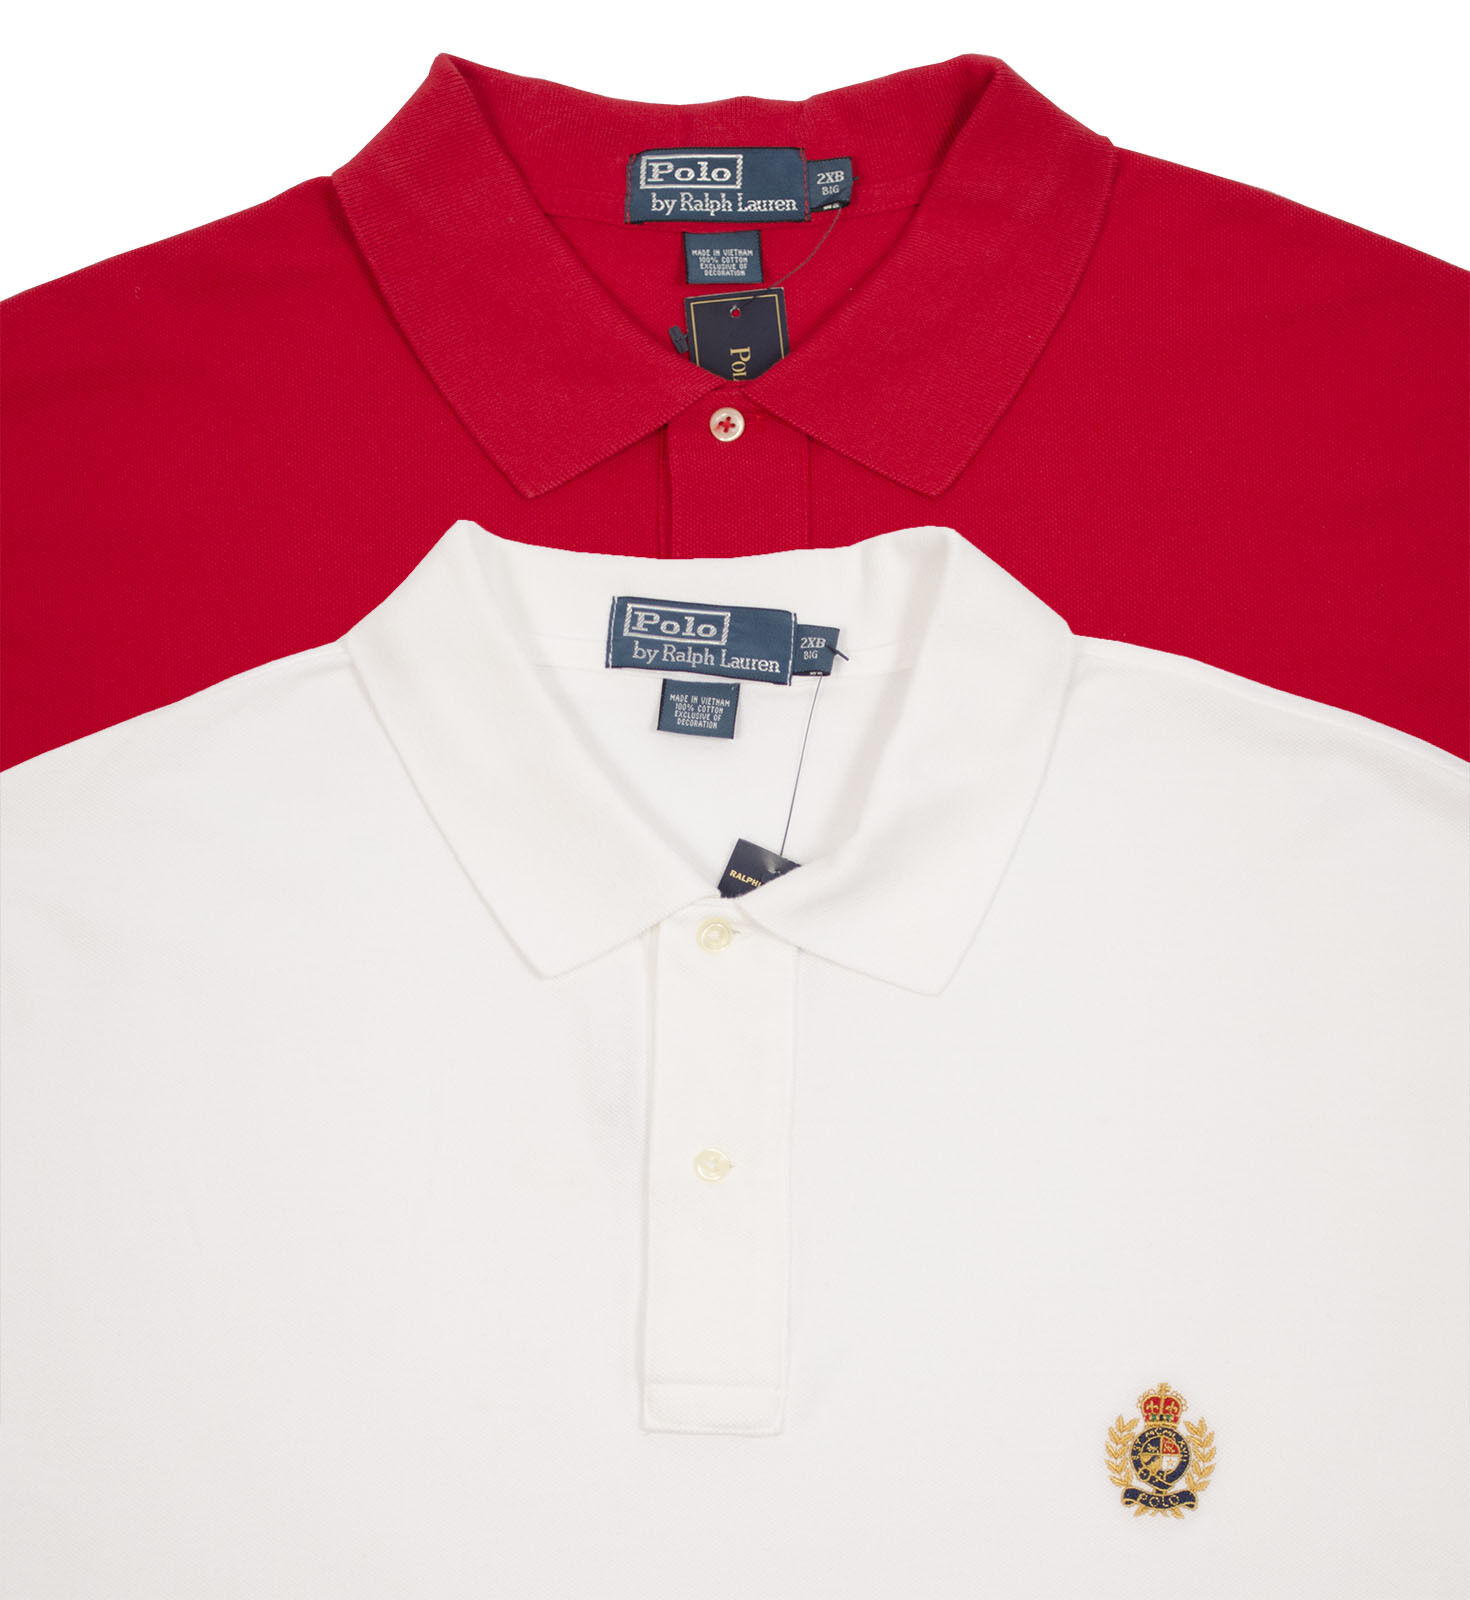 POLO RALPH LAUREN BIG TALL MEN'S COTTON RED WHITE MESH SHIRT TOP LOGO AS304